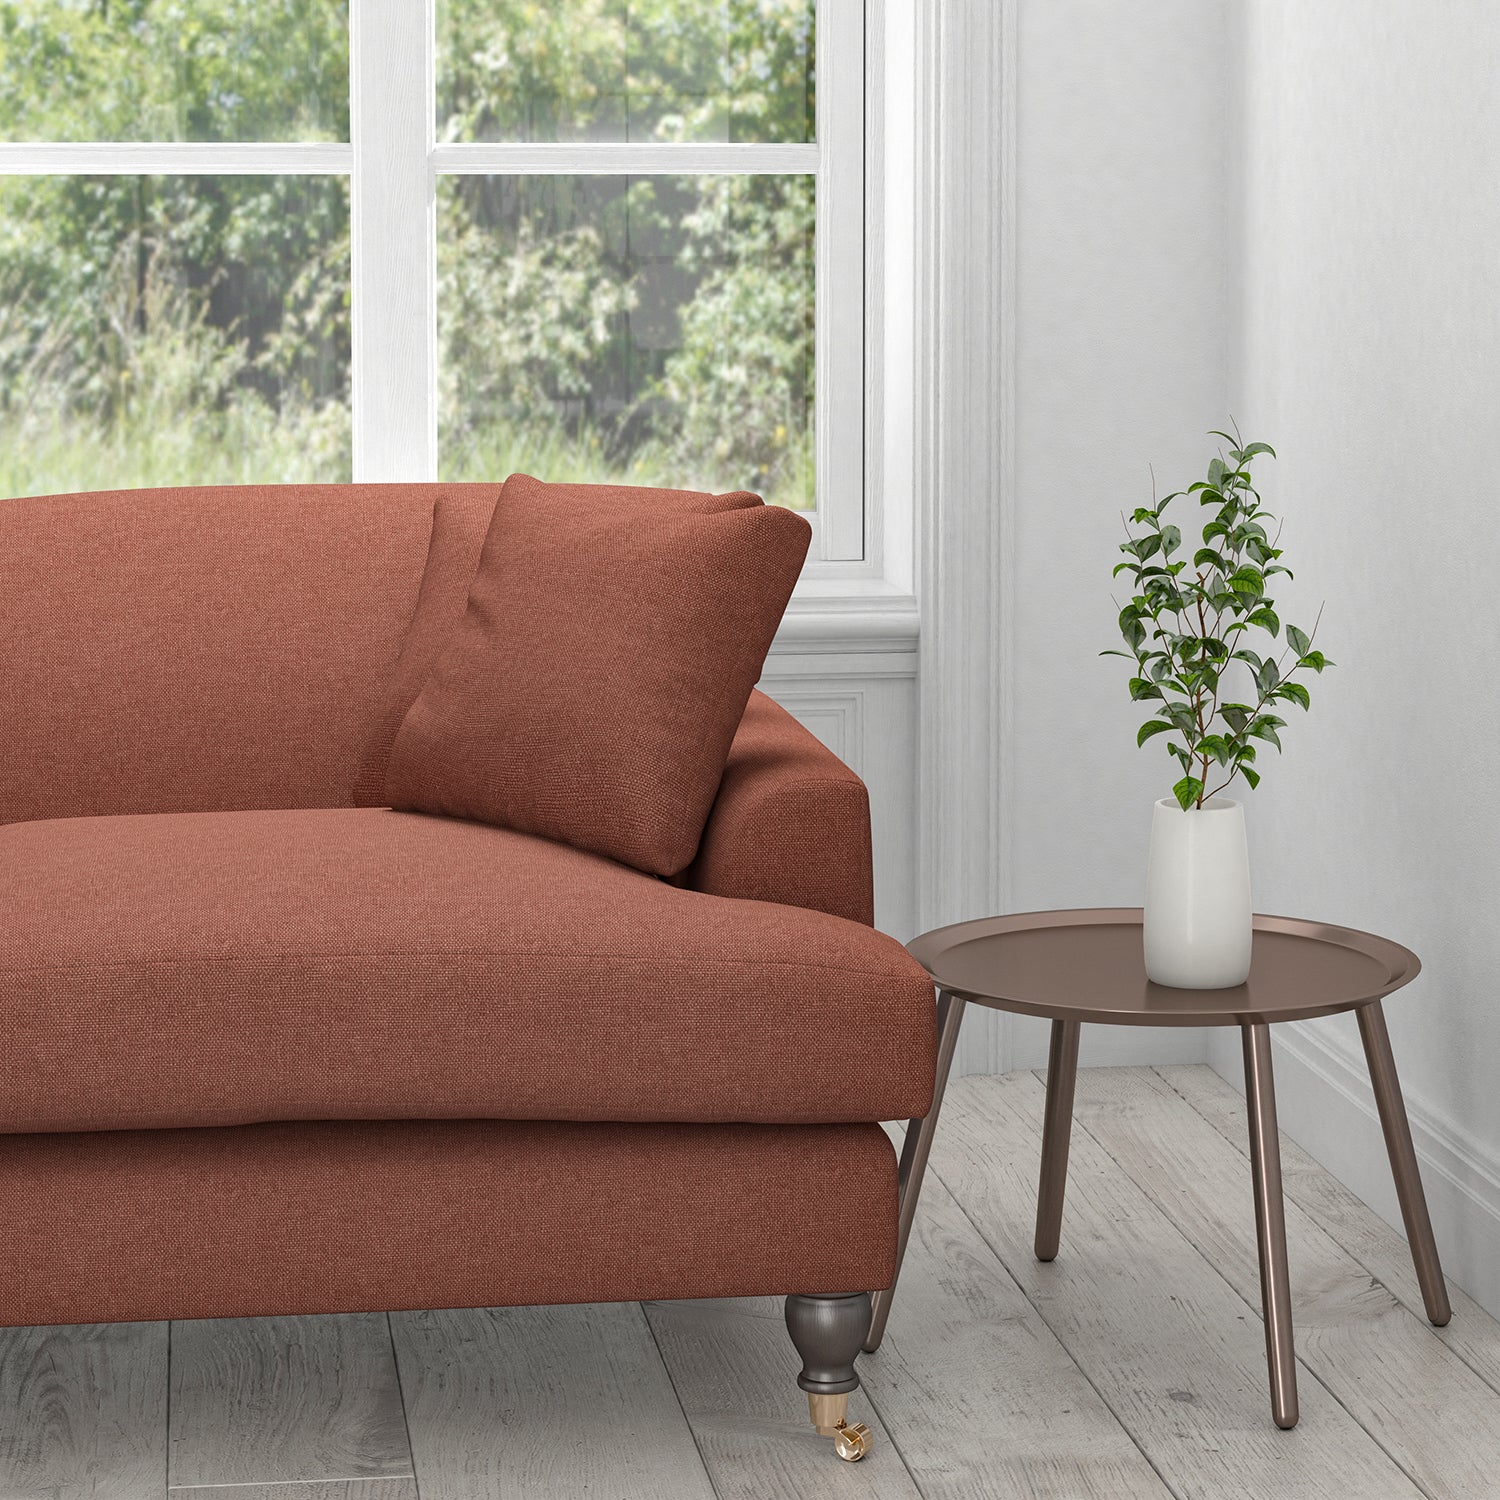 Sofa upholstered in a brick red plain washable furnishing fabric